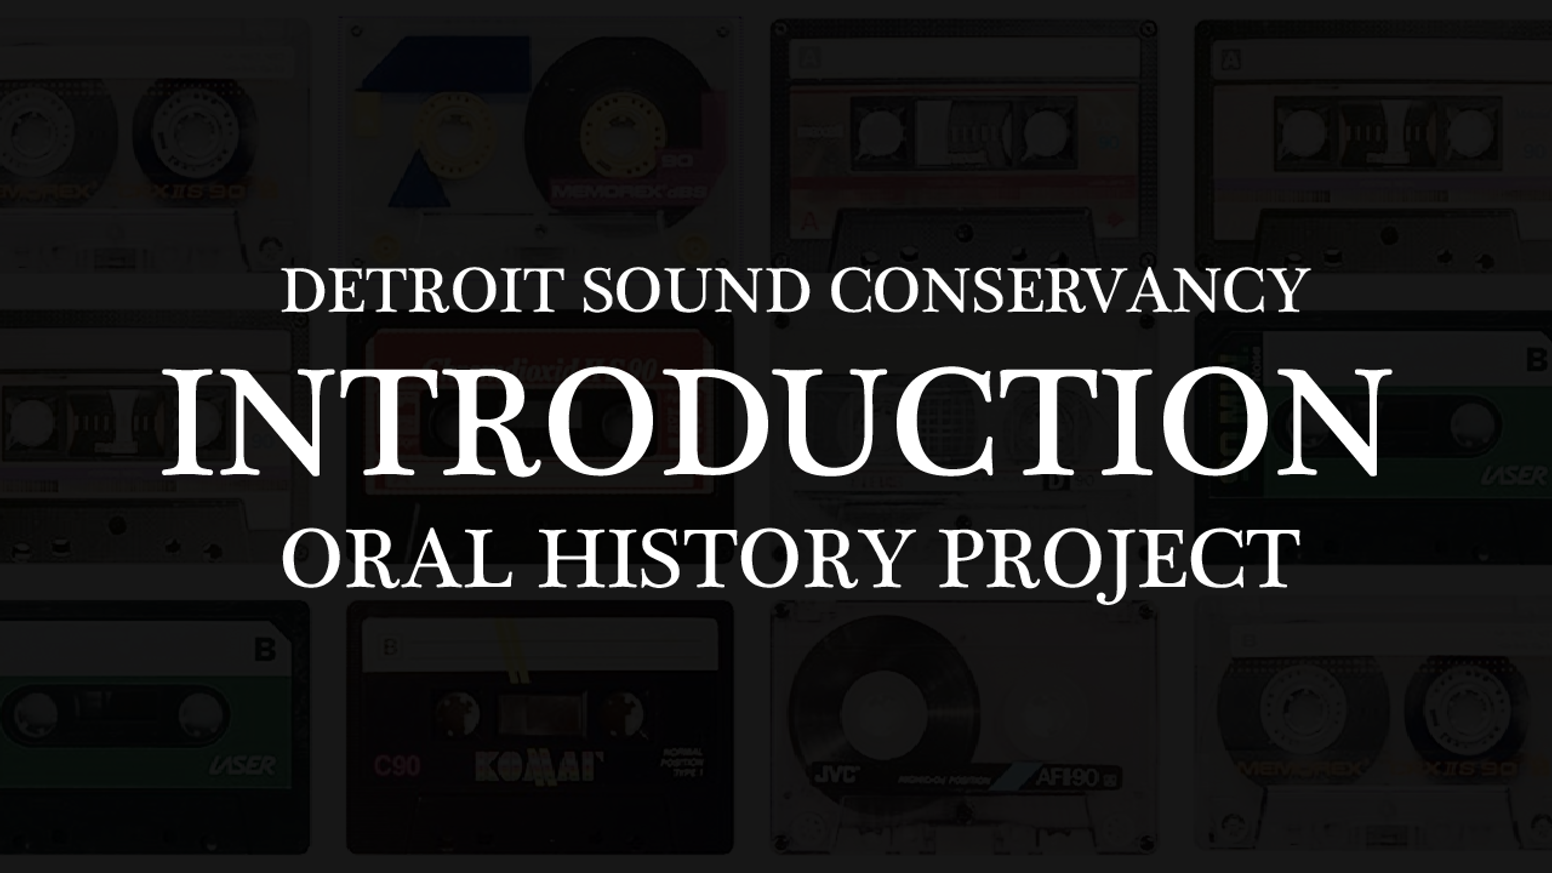 Detroit Sound Conservancy Oral History Project by Detroit